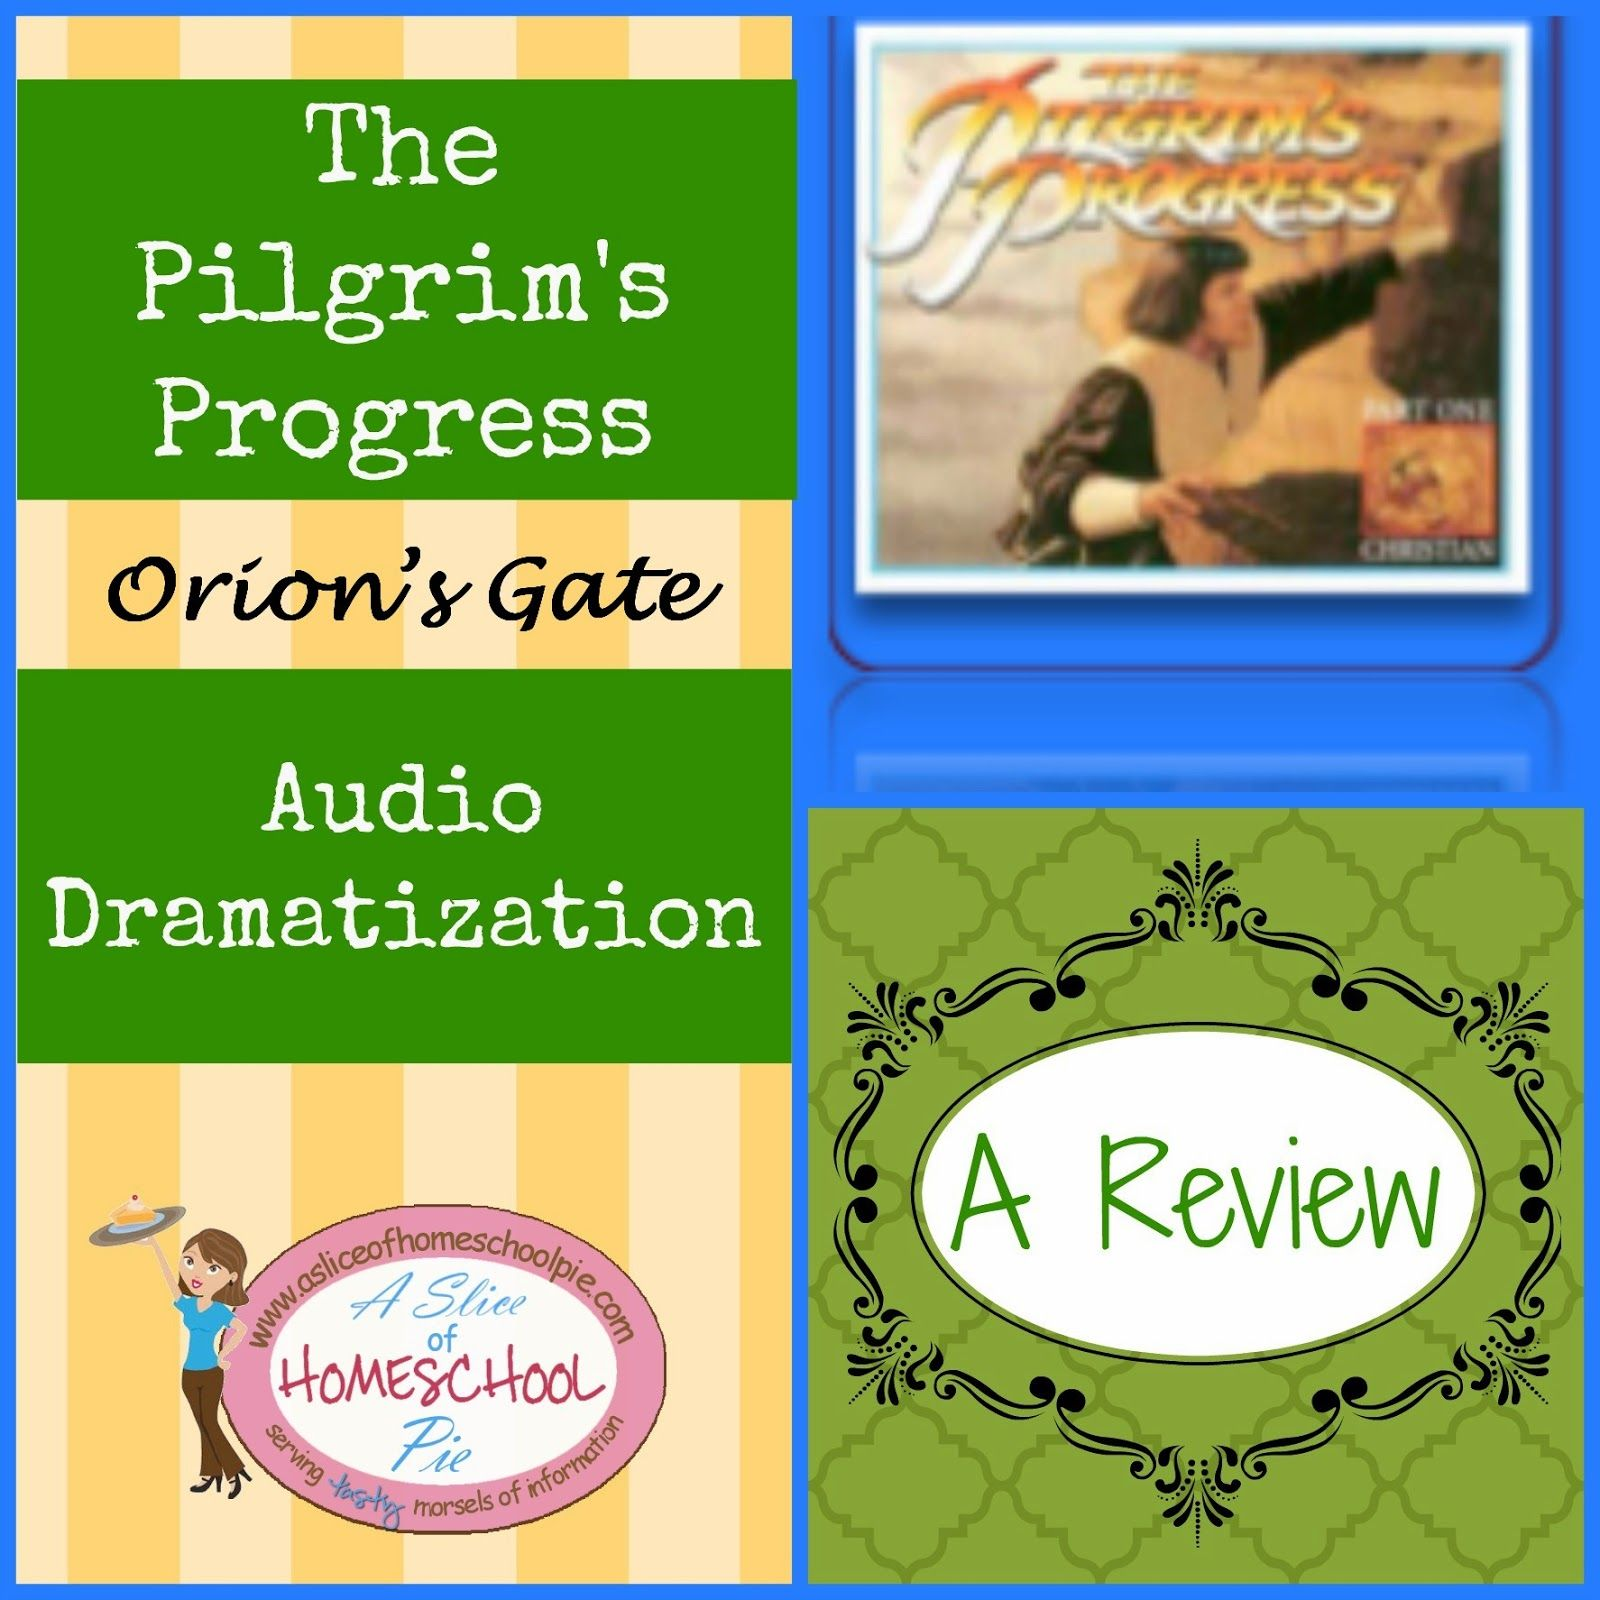 Did You Know That There Is An Audio Dramatization By